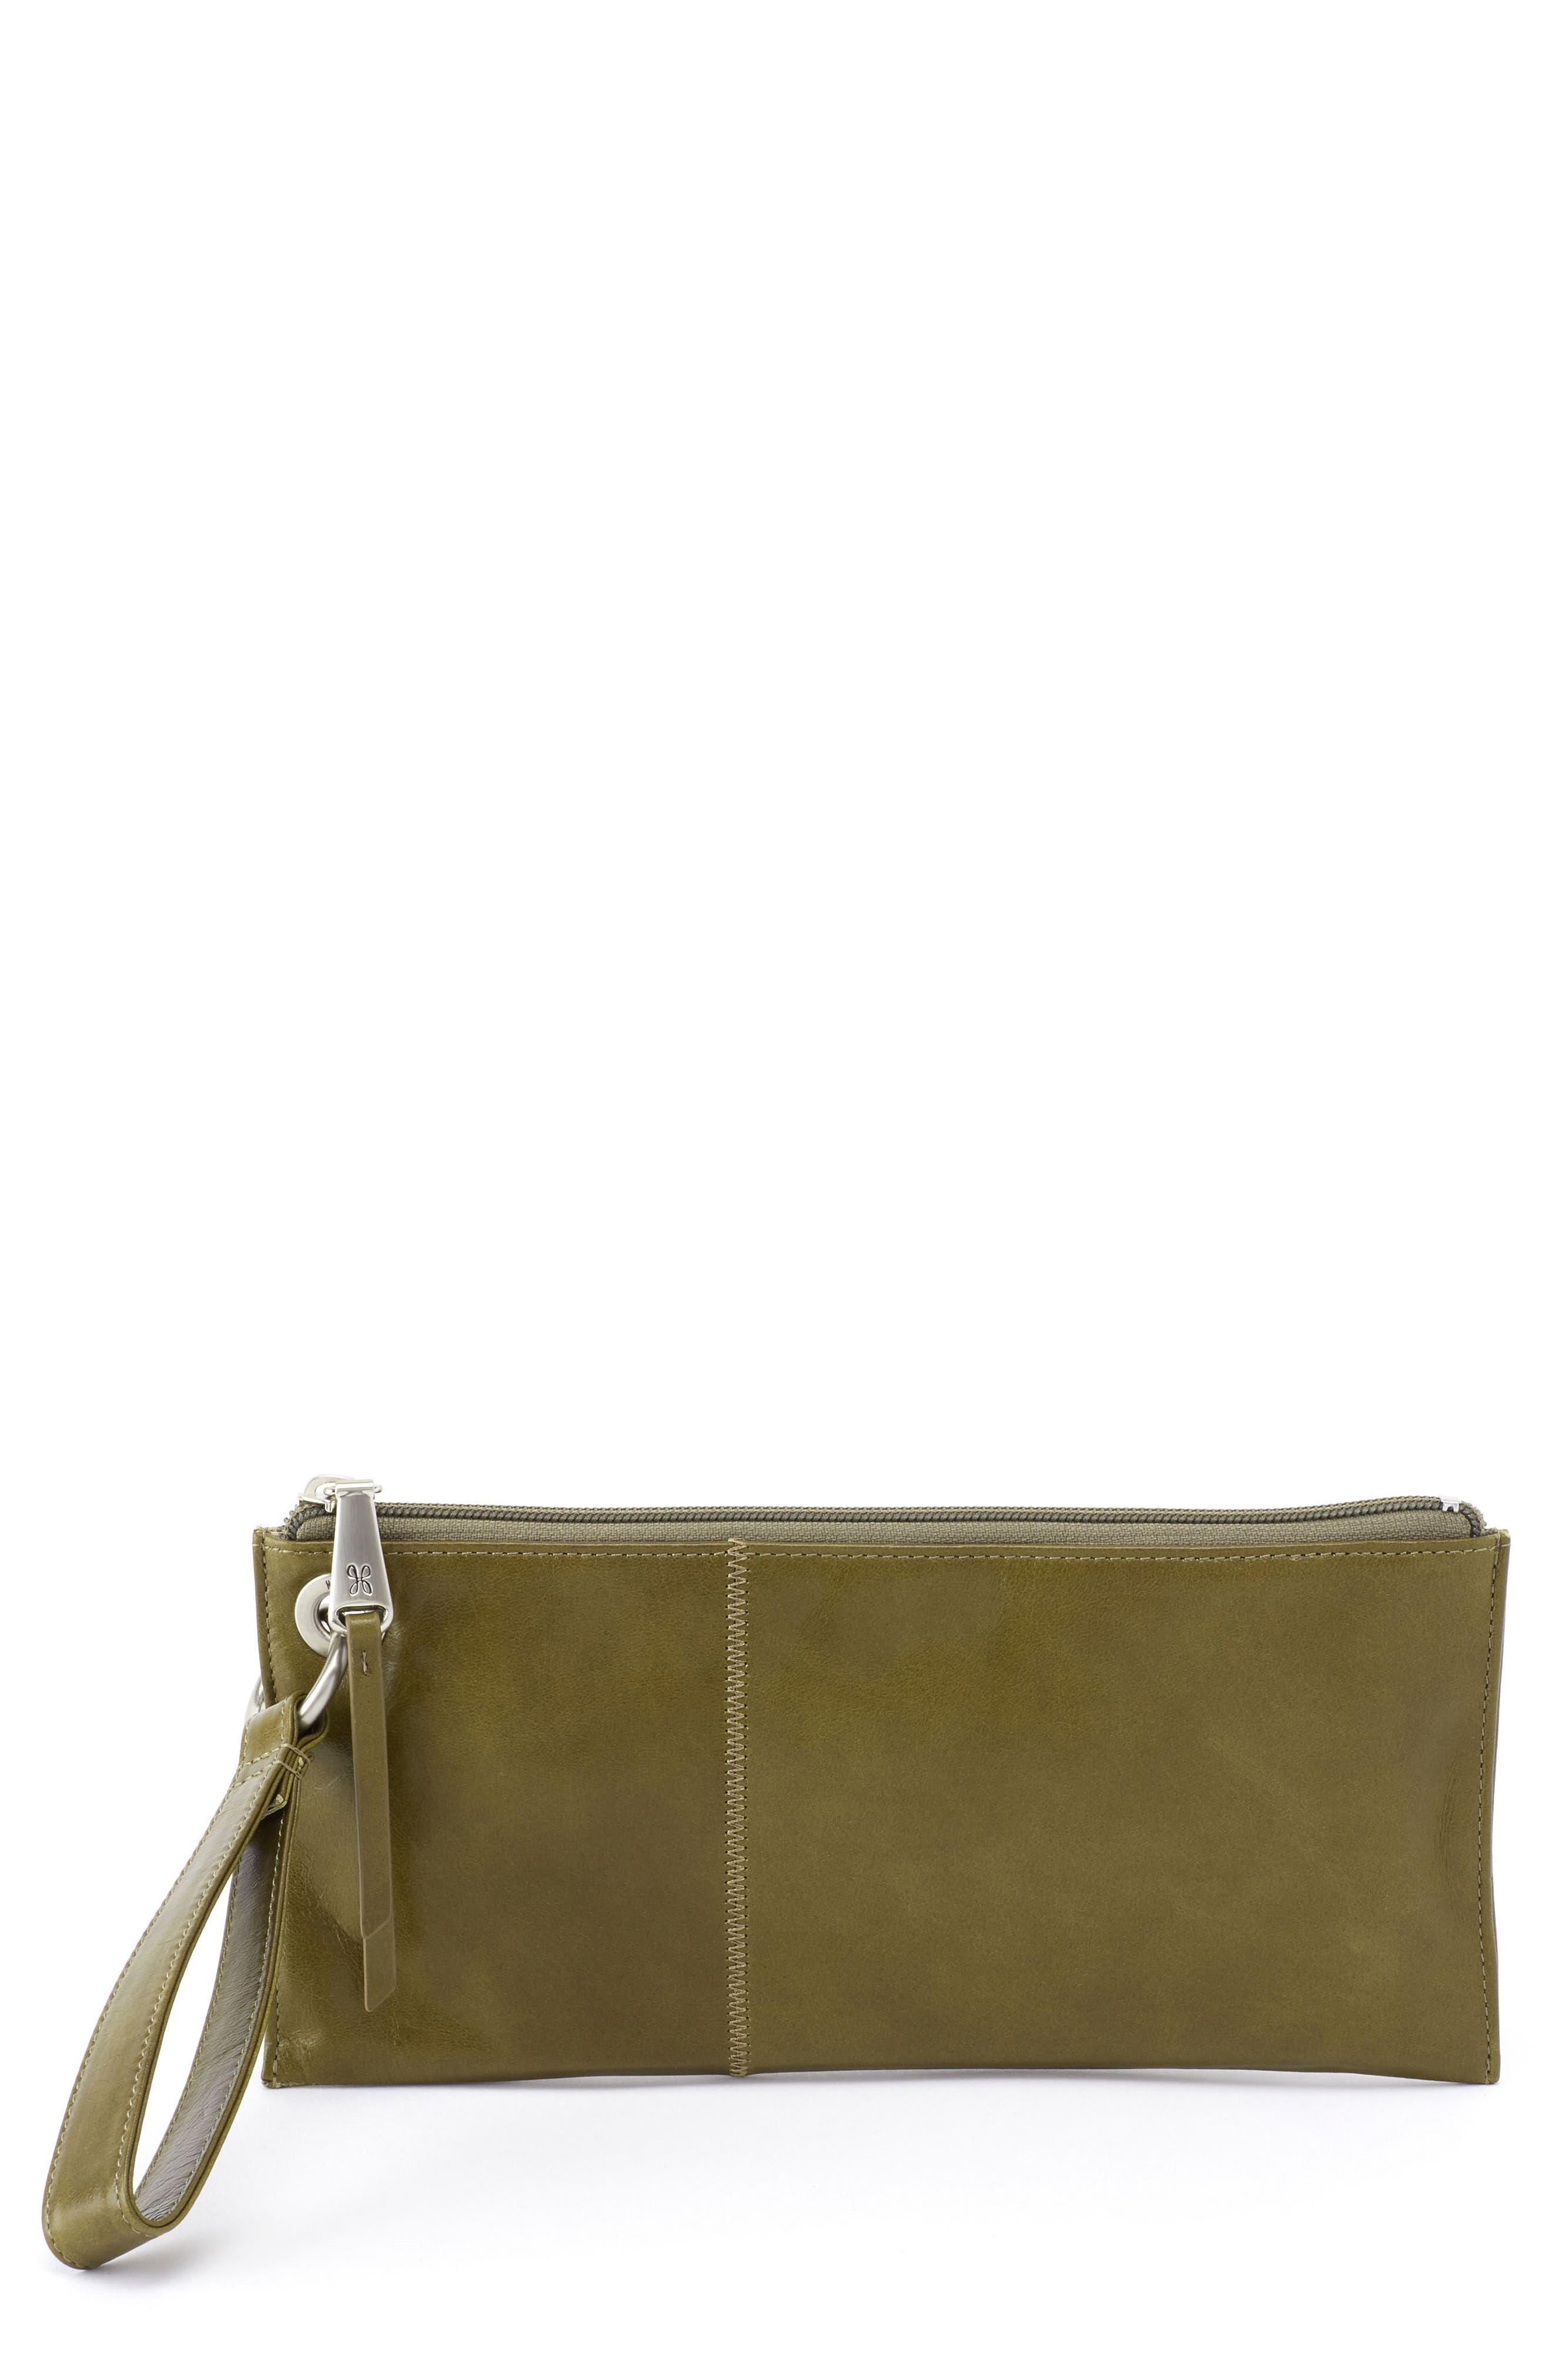 'Vida' Leather Clutch,                             Main thumbnail 1, color,                             Willow